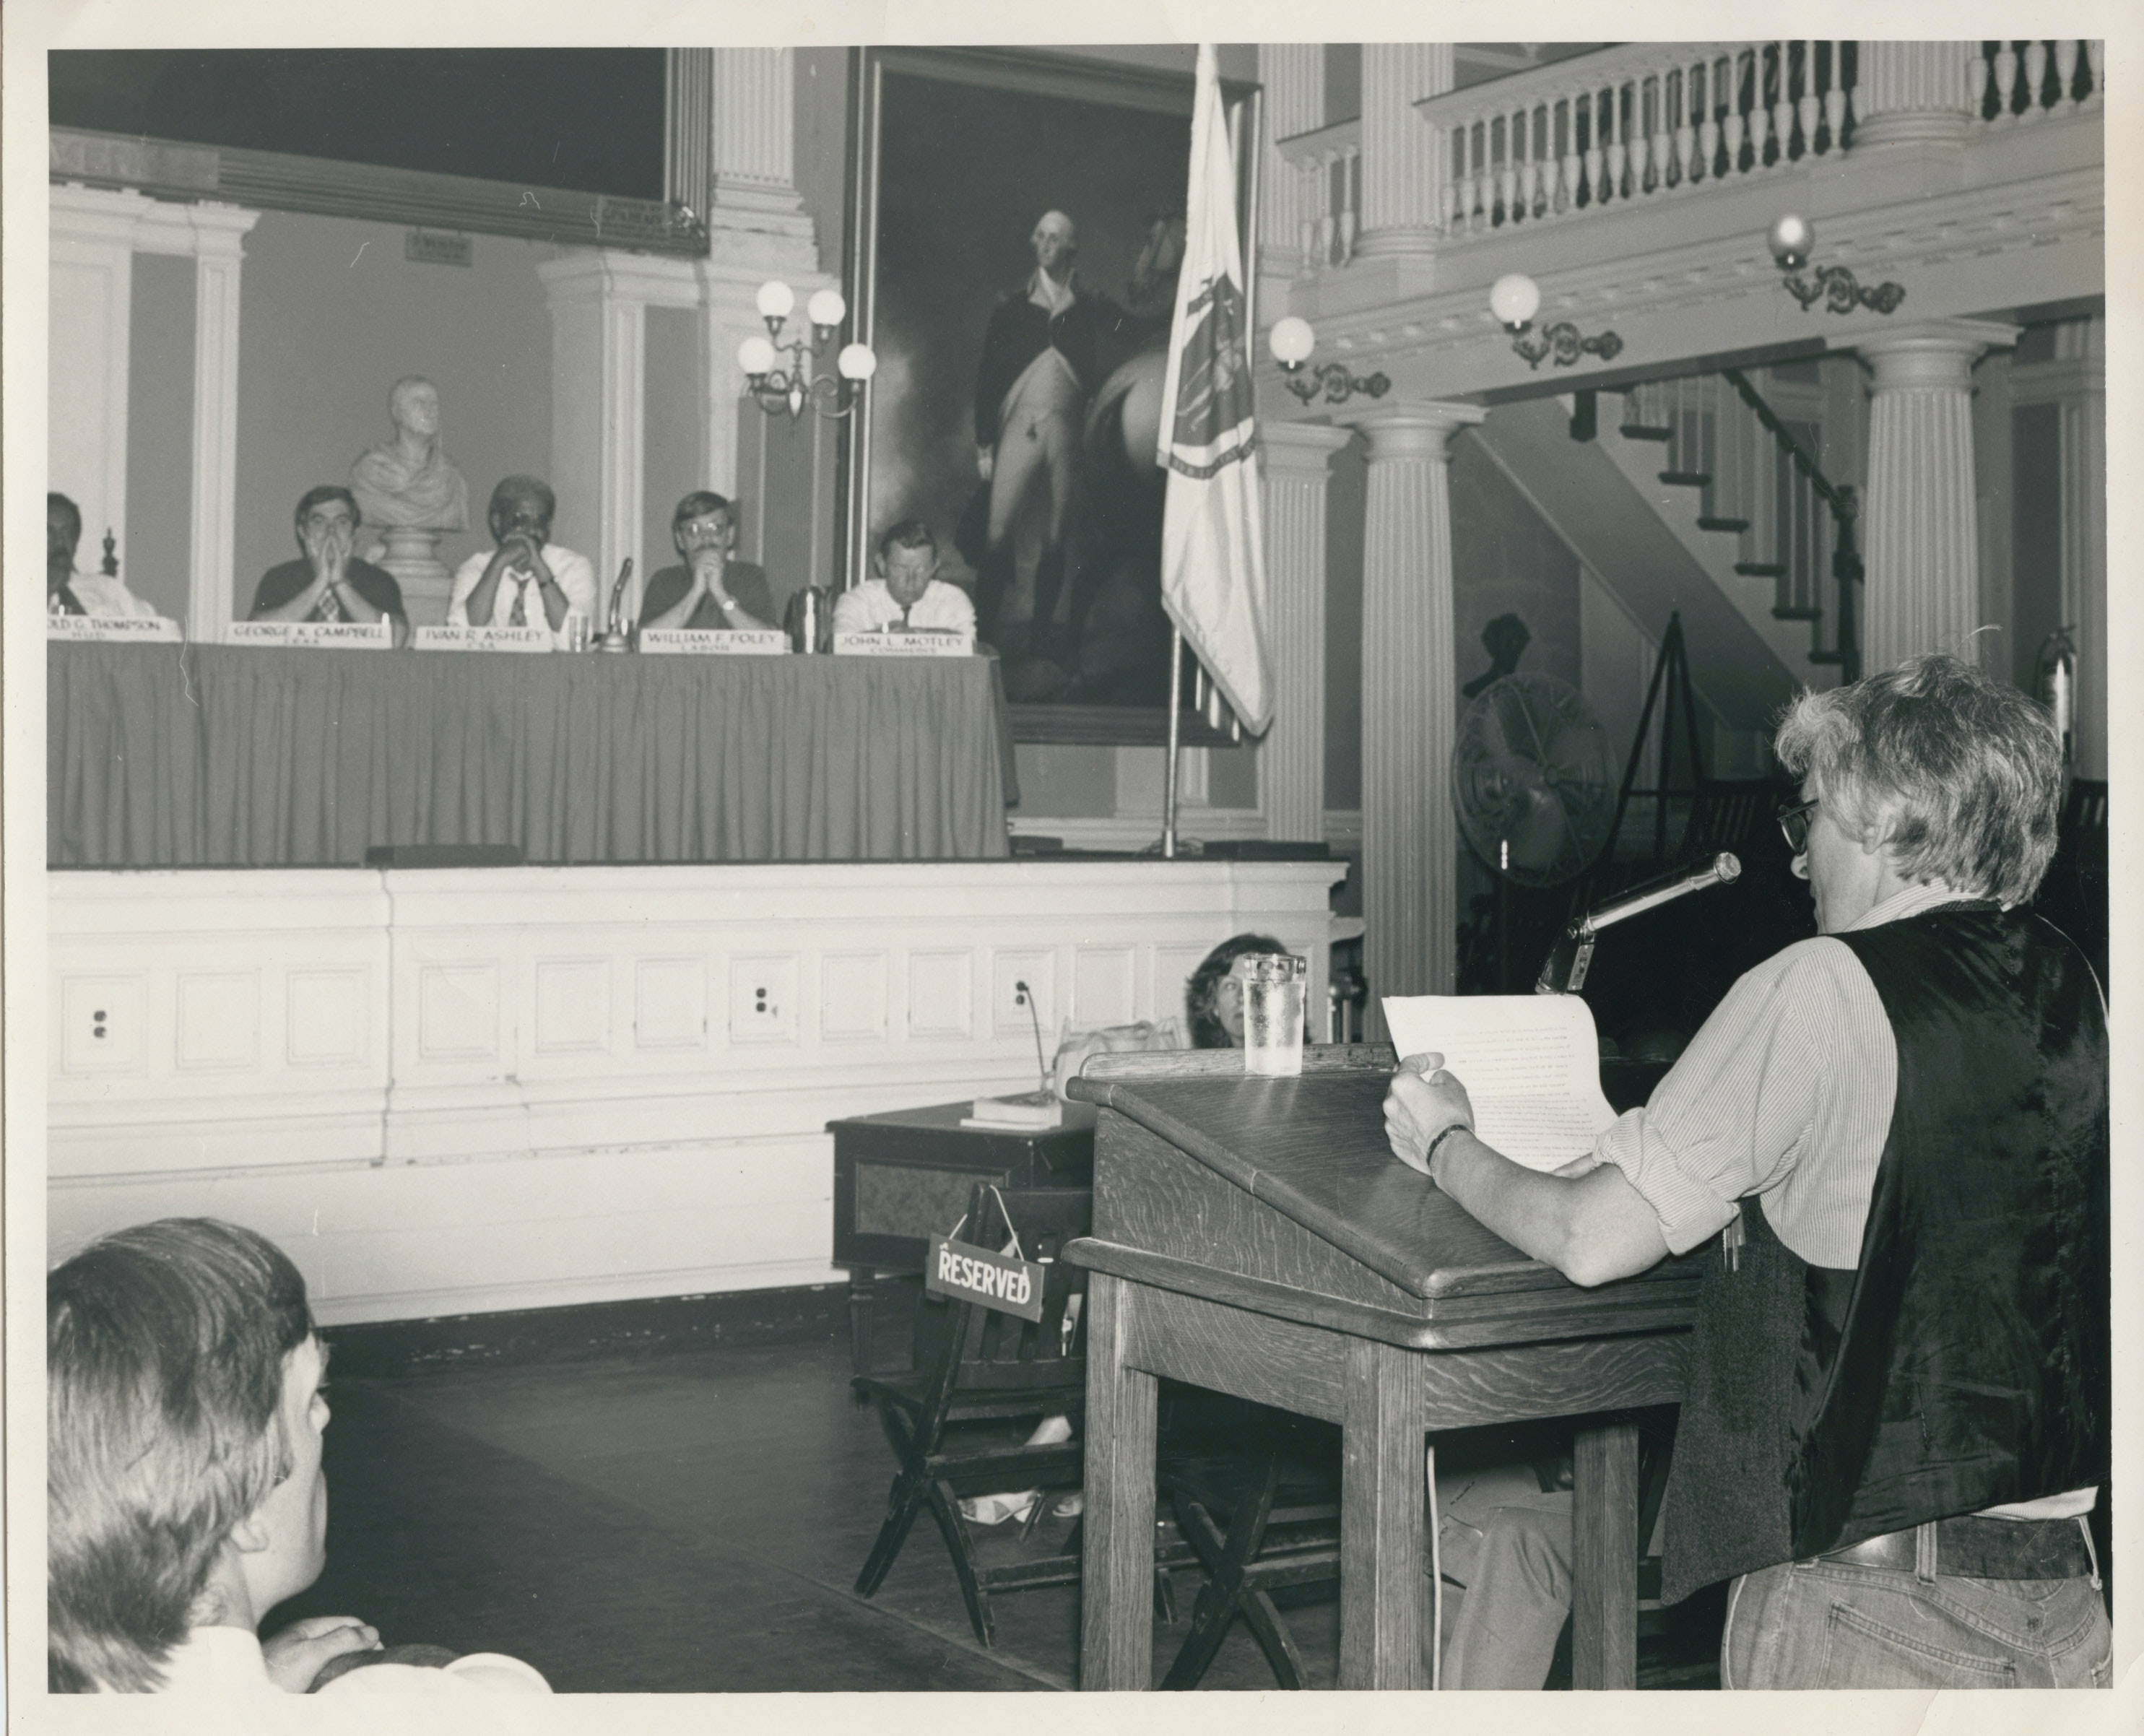 Kip Tierman giving a testimony in the Great Hall at Faneuil Hall, ca. 1975.